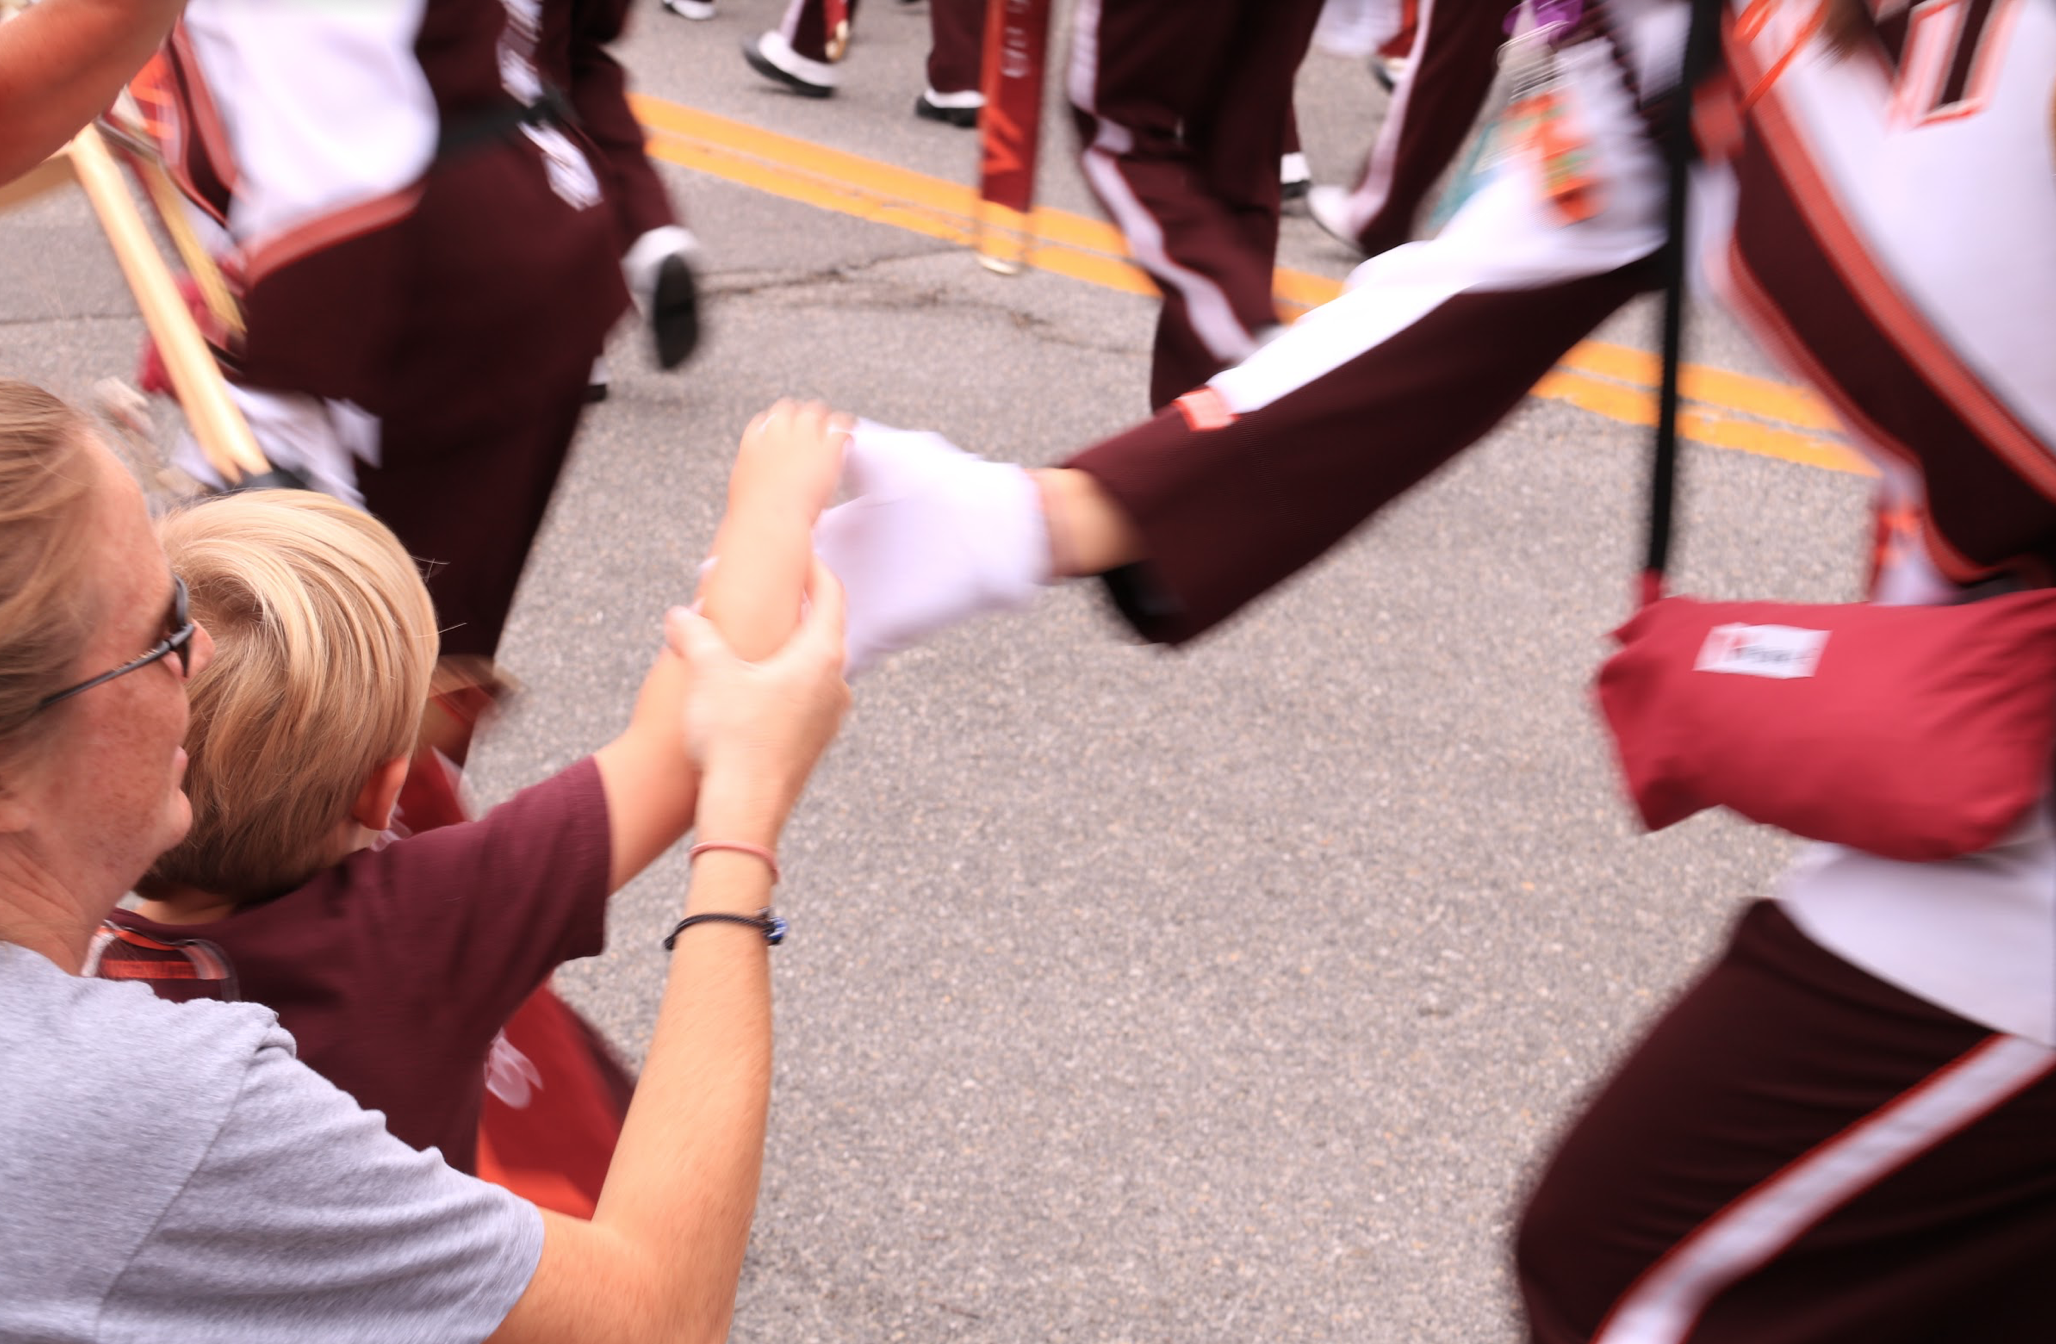 High-fiving kids is the highlight of the March to Victory for many MVs; Source: Ashley Deans